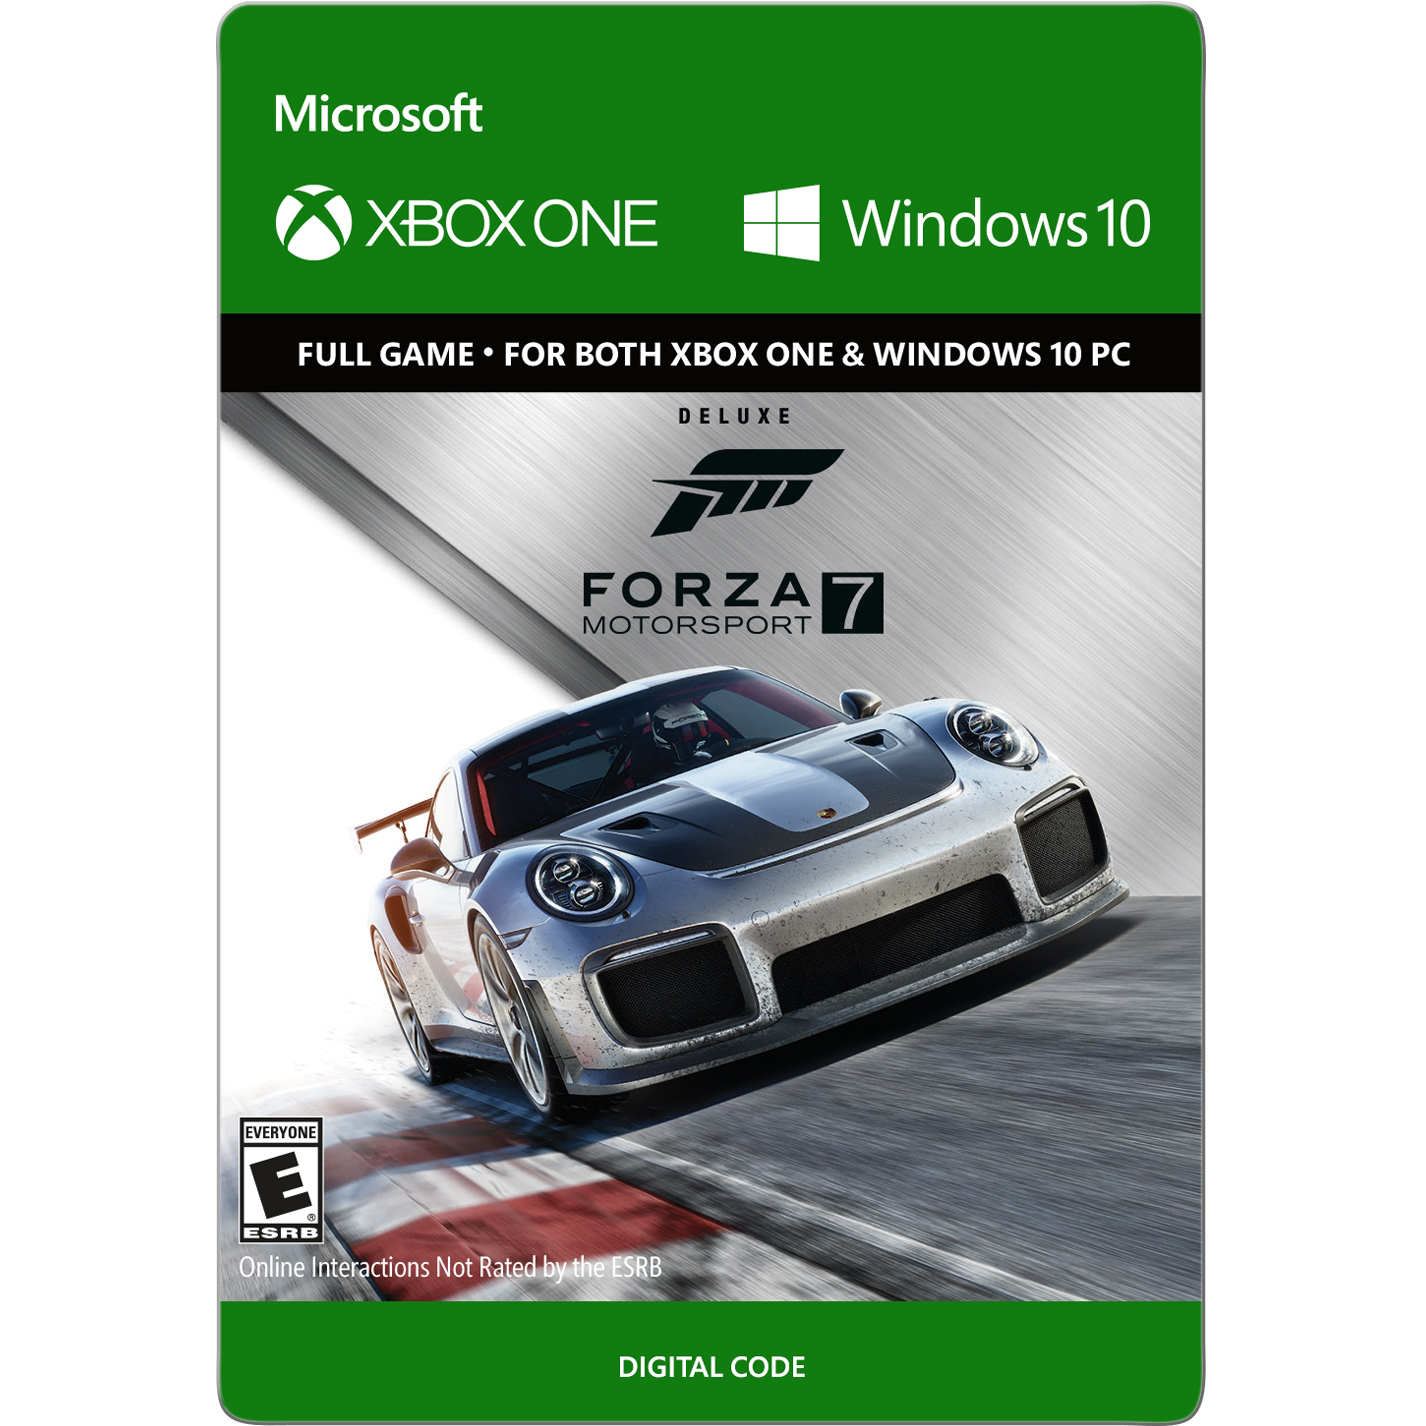 Forza 7 Deluxe Edition, Microsoft, Xbox One (Email Delivery)